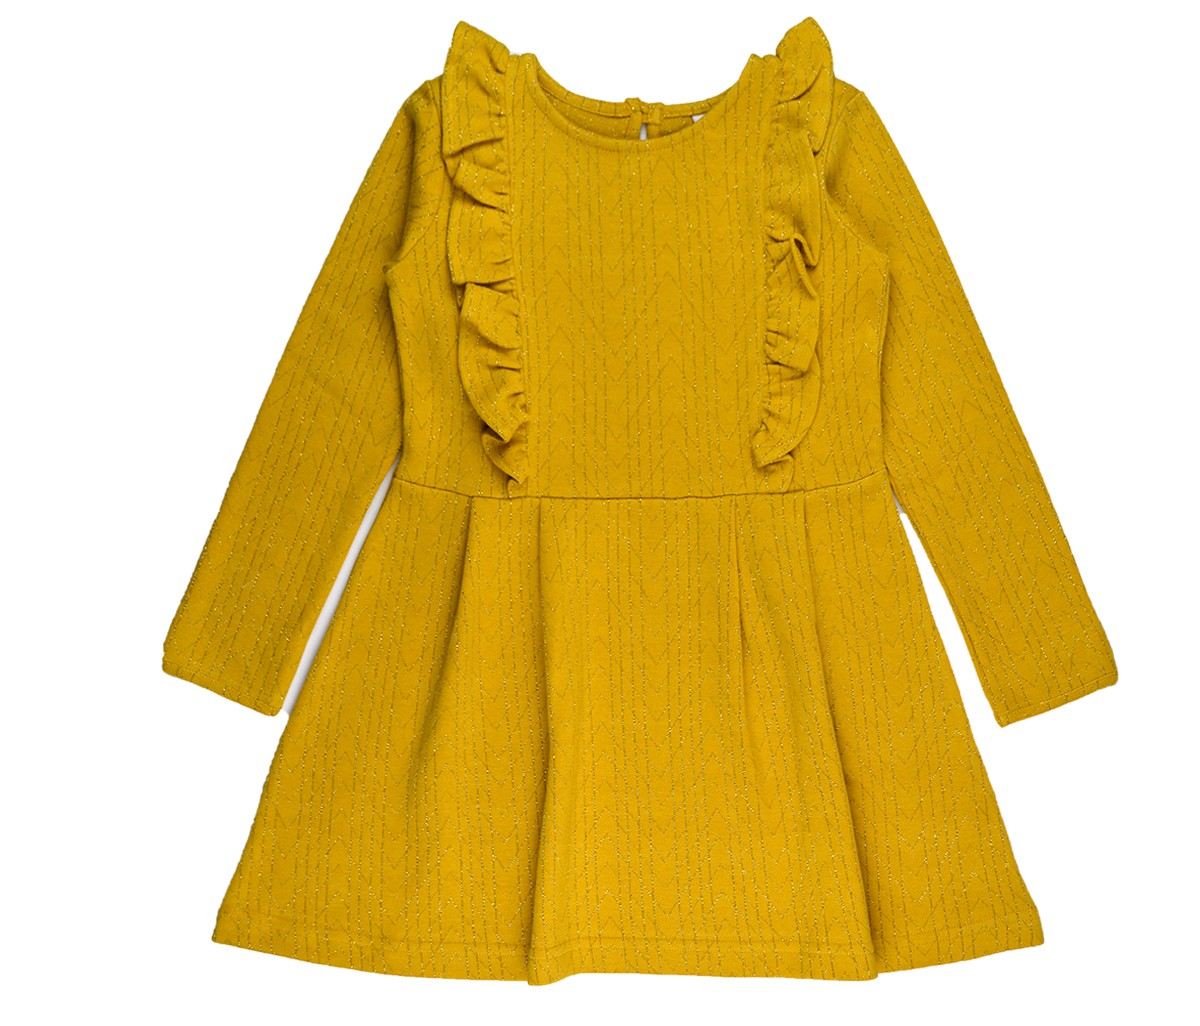 Ruffle dress gold